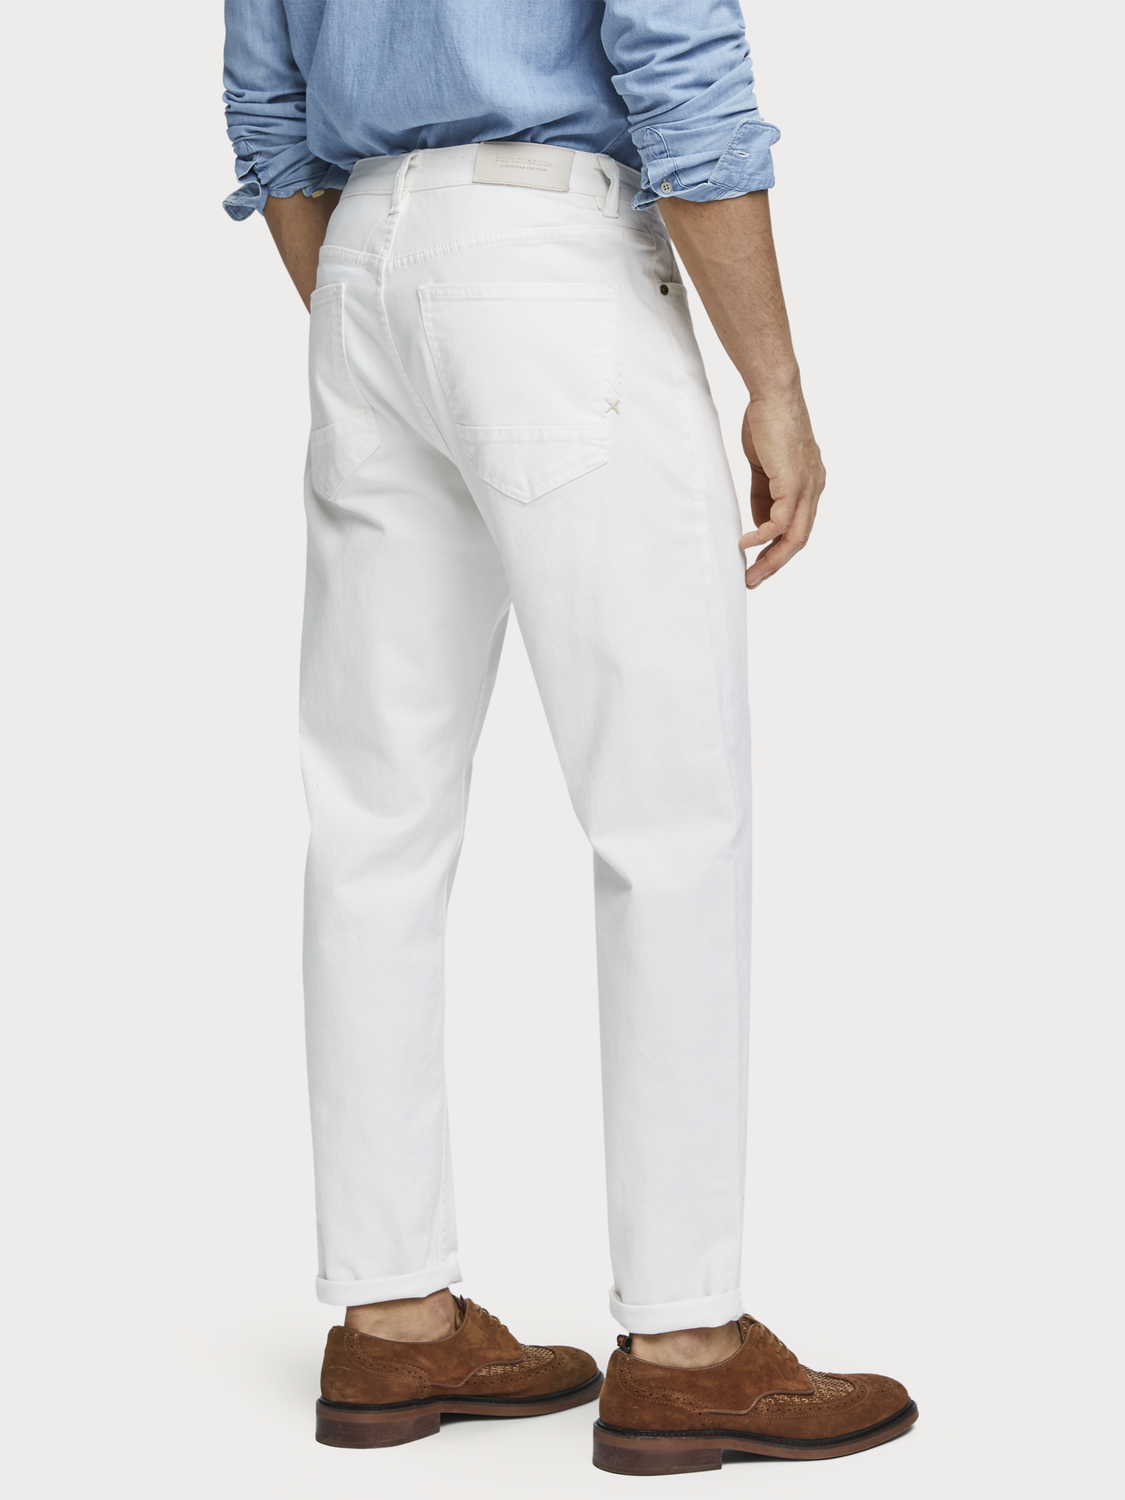 Men The norm - twill jeans | High rise straight fit